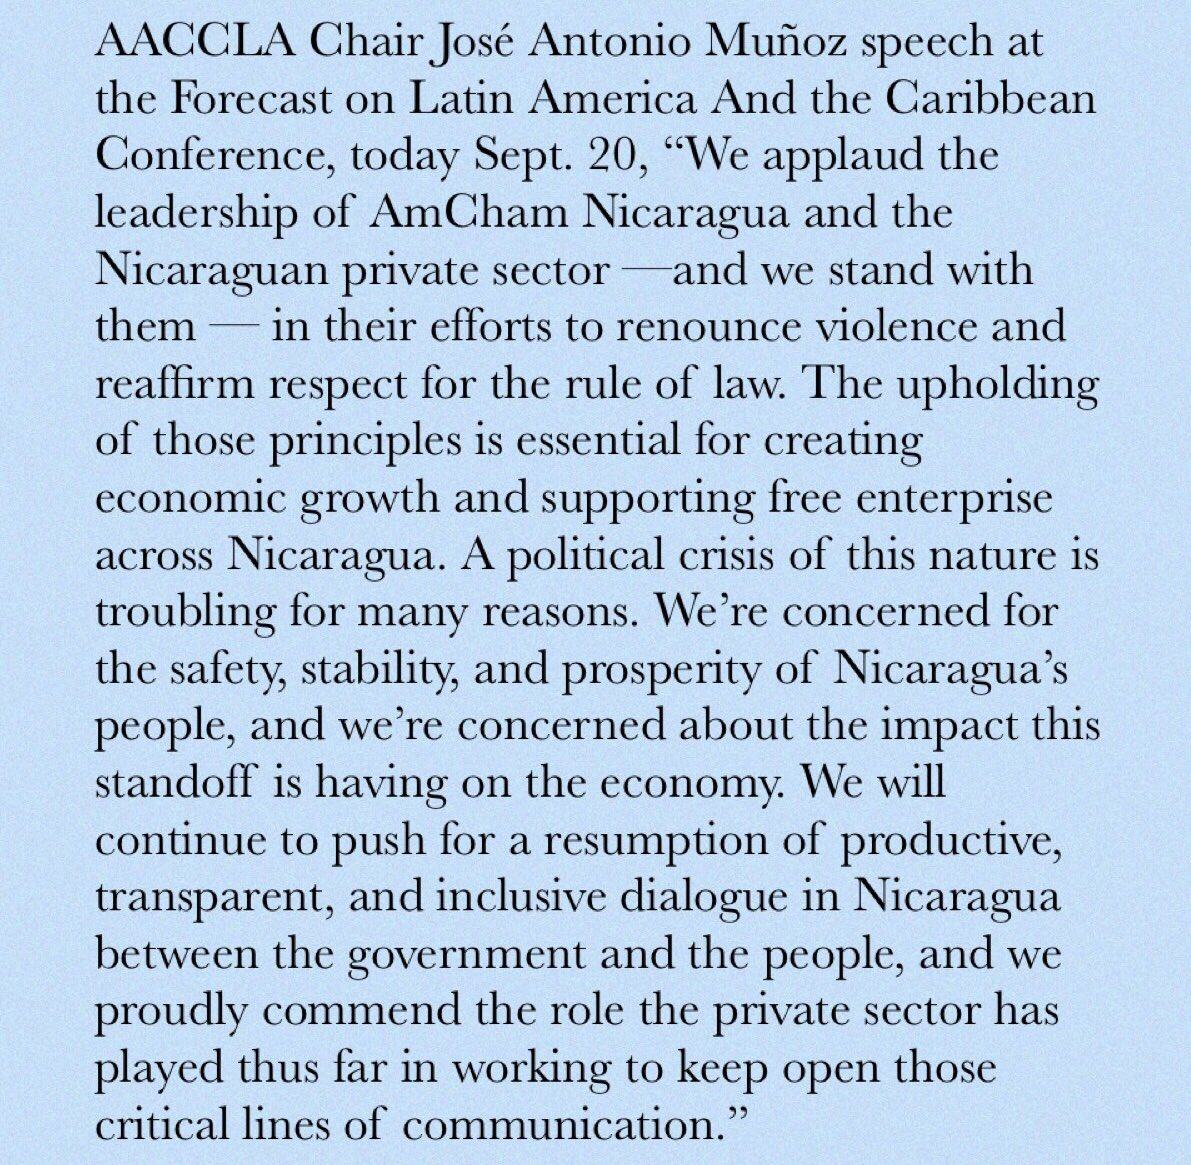 test Twitter Media - AACCLA stands with Nicaragua @AmChamNicaragua https://t.co/2m4buzwhrO